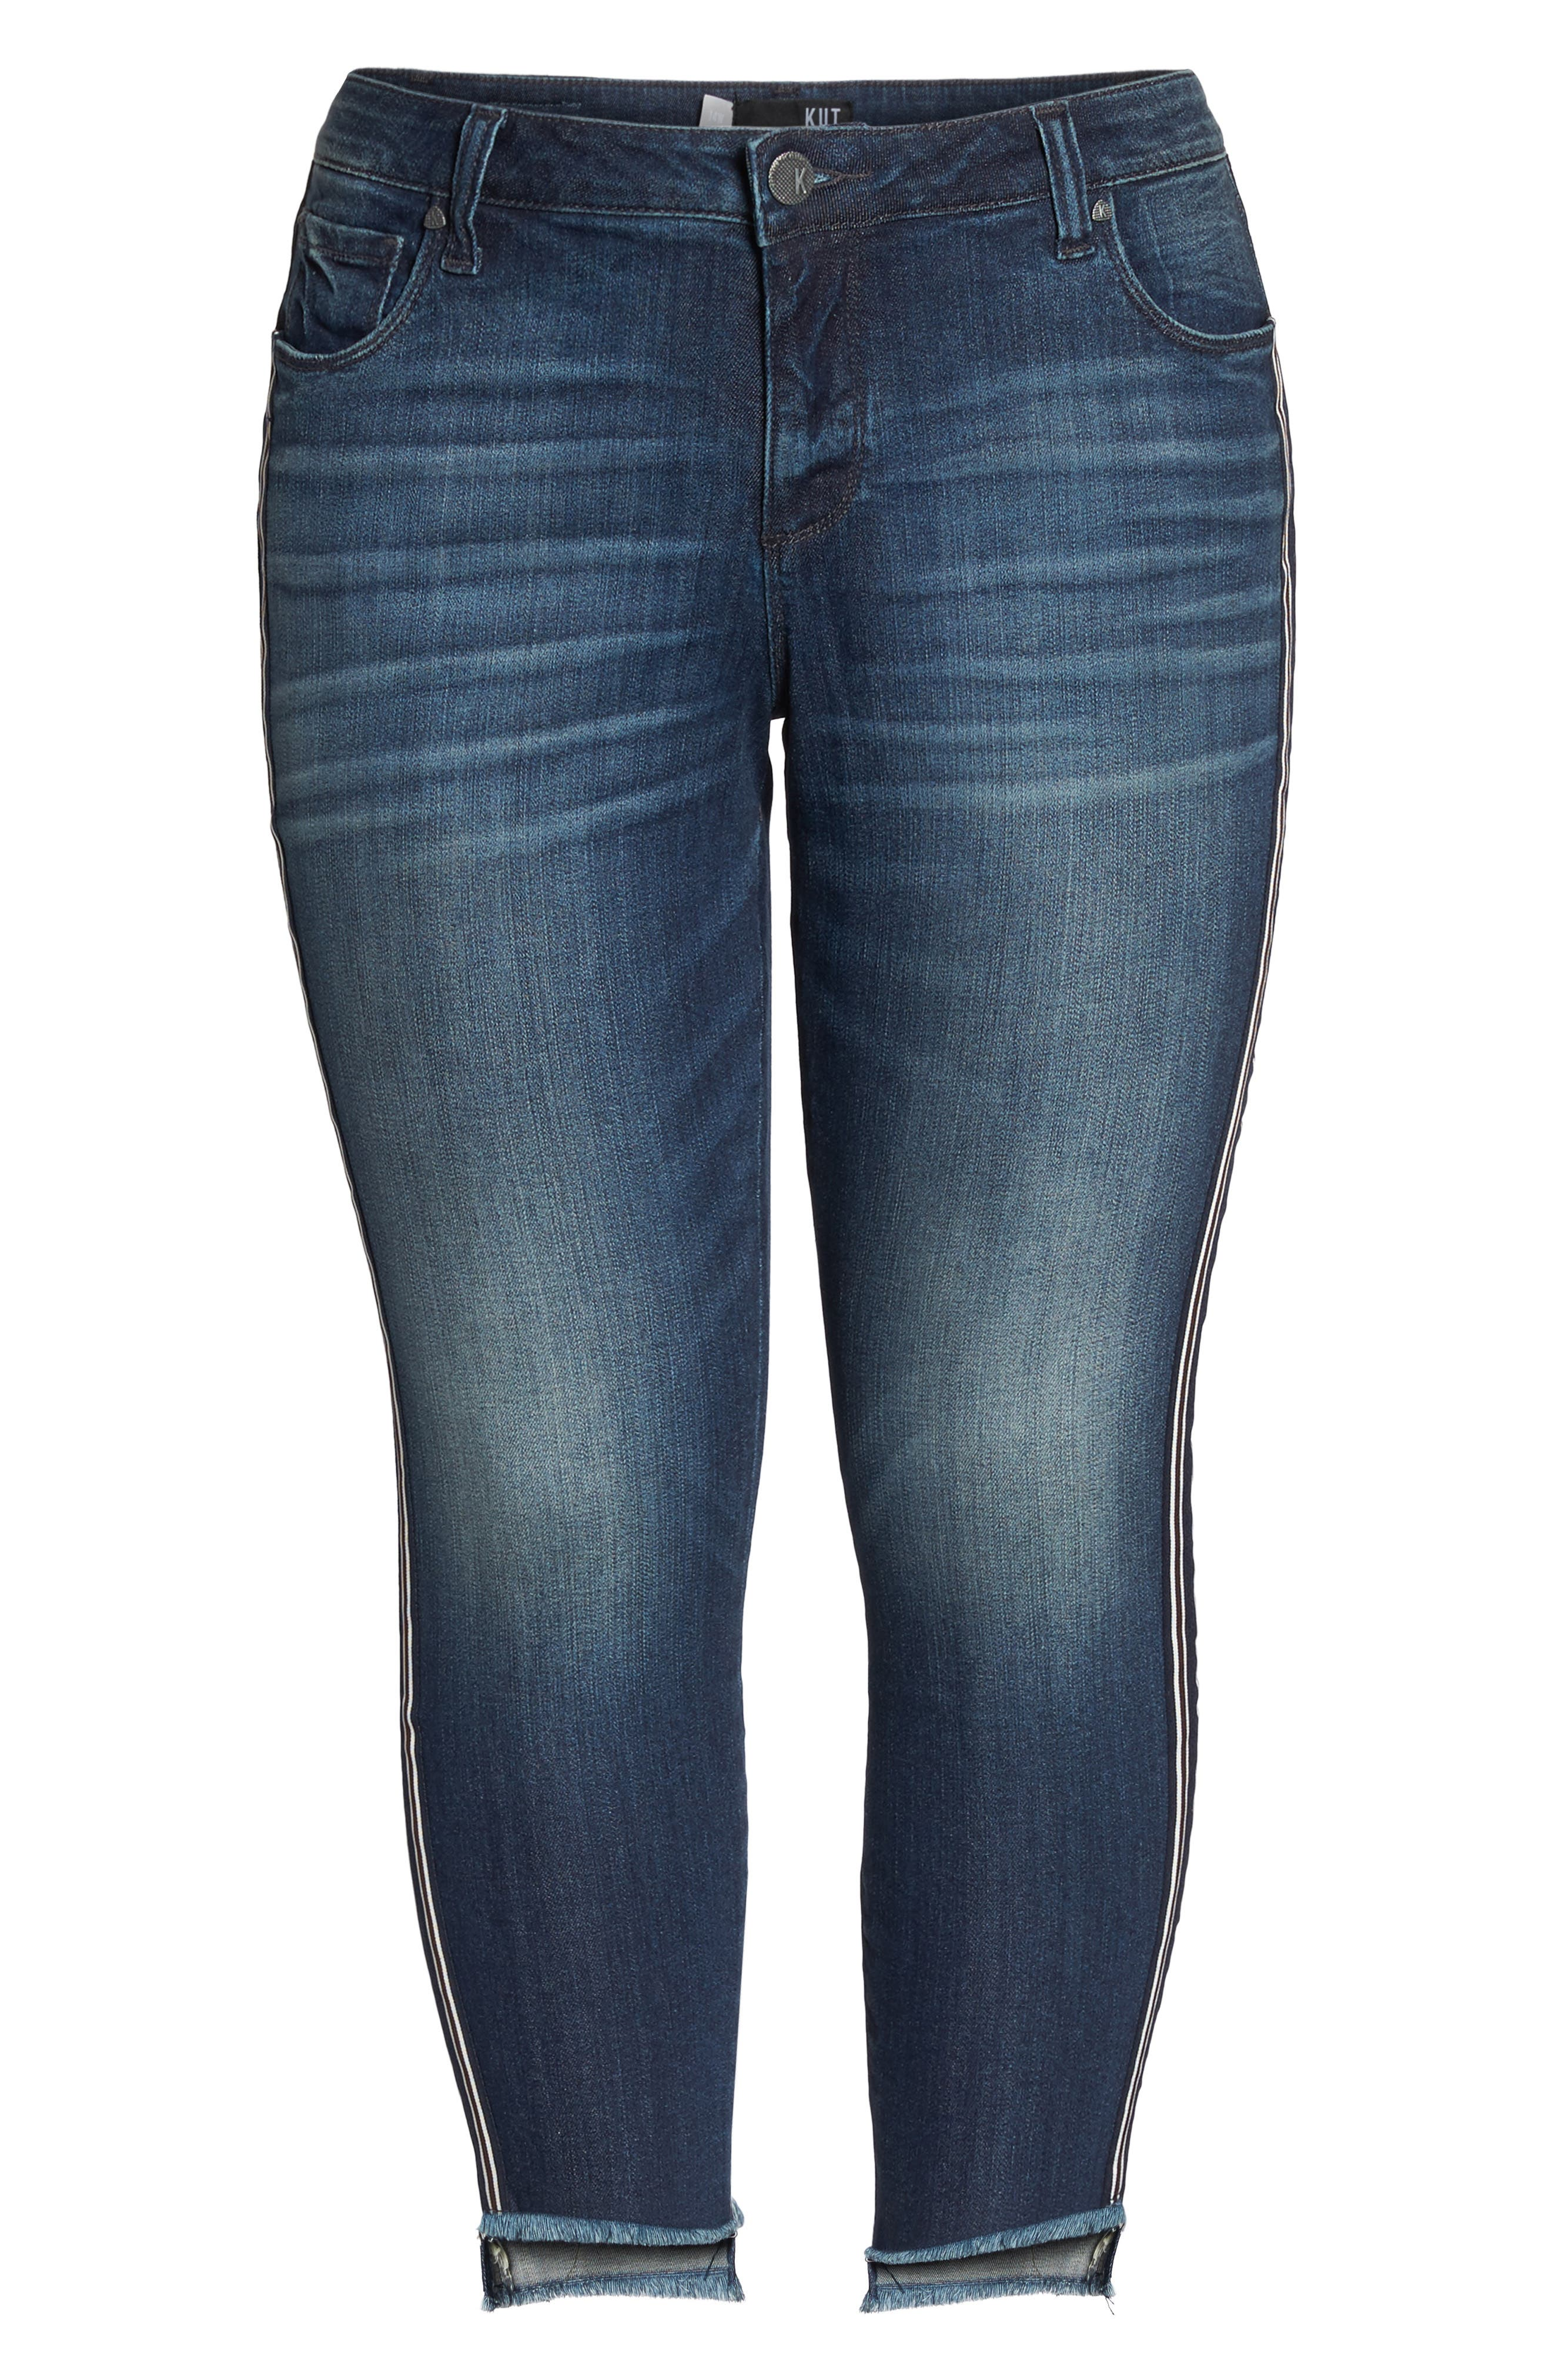 Alternate Image 6  - KUT from the Kloth Reese Side Stripe Uneven Ankle Jeans (Analyzed) (Plus Size)